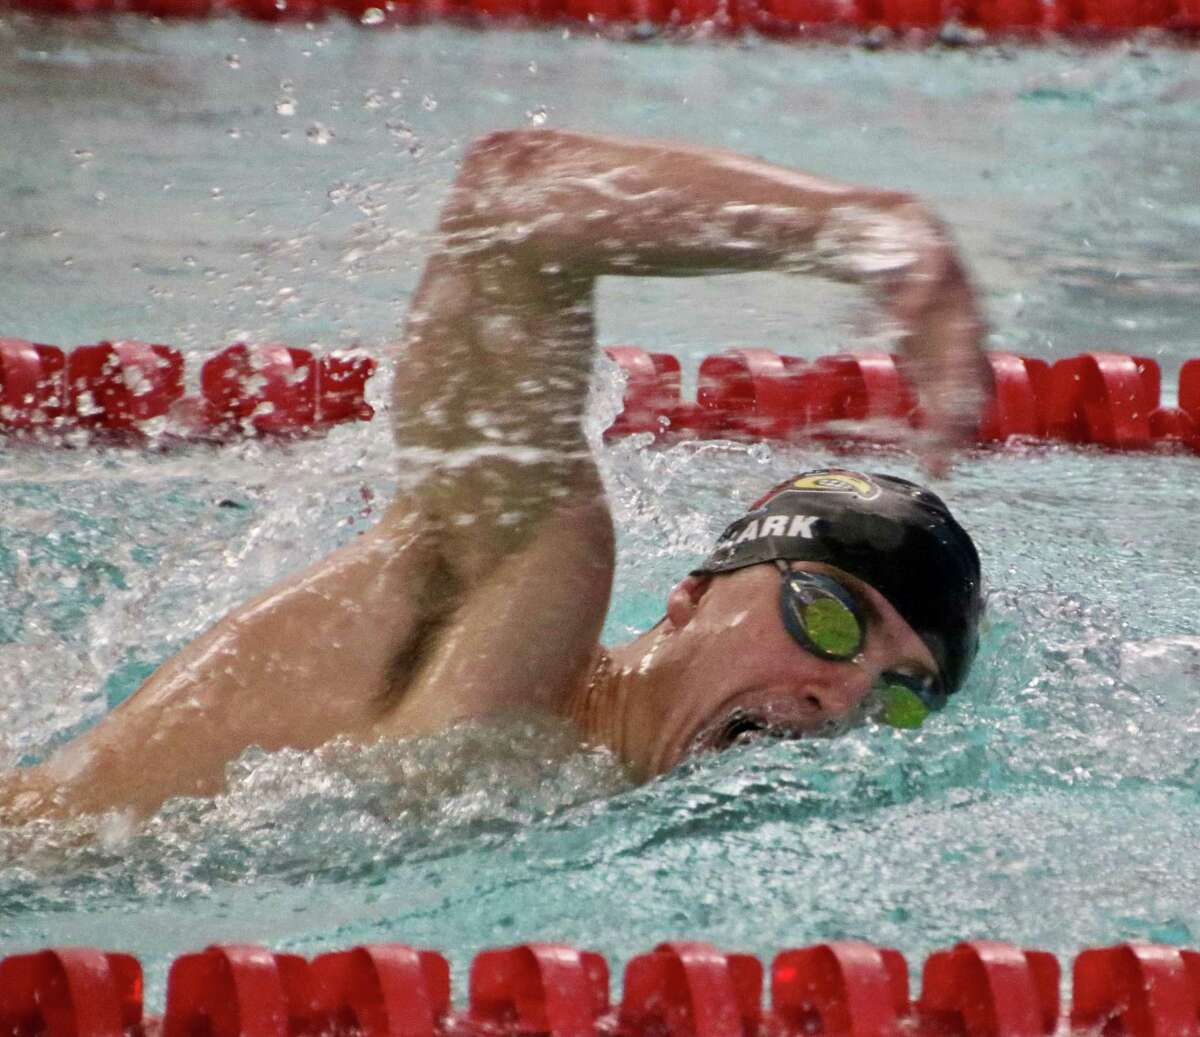 Greenwich senior Charlie Clark helped lead the Greenwich boys swimming team to an undefeated dual meet season and to the FCIAC championship with a standout season.